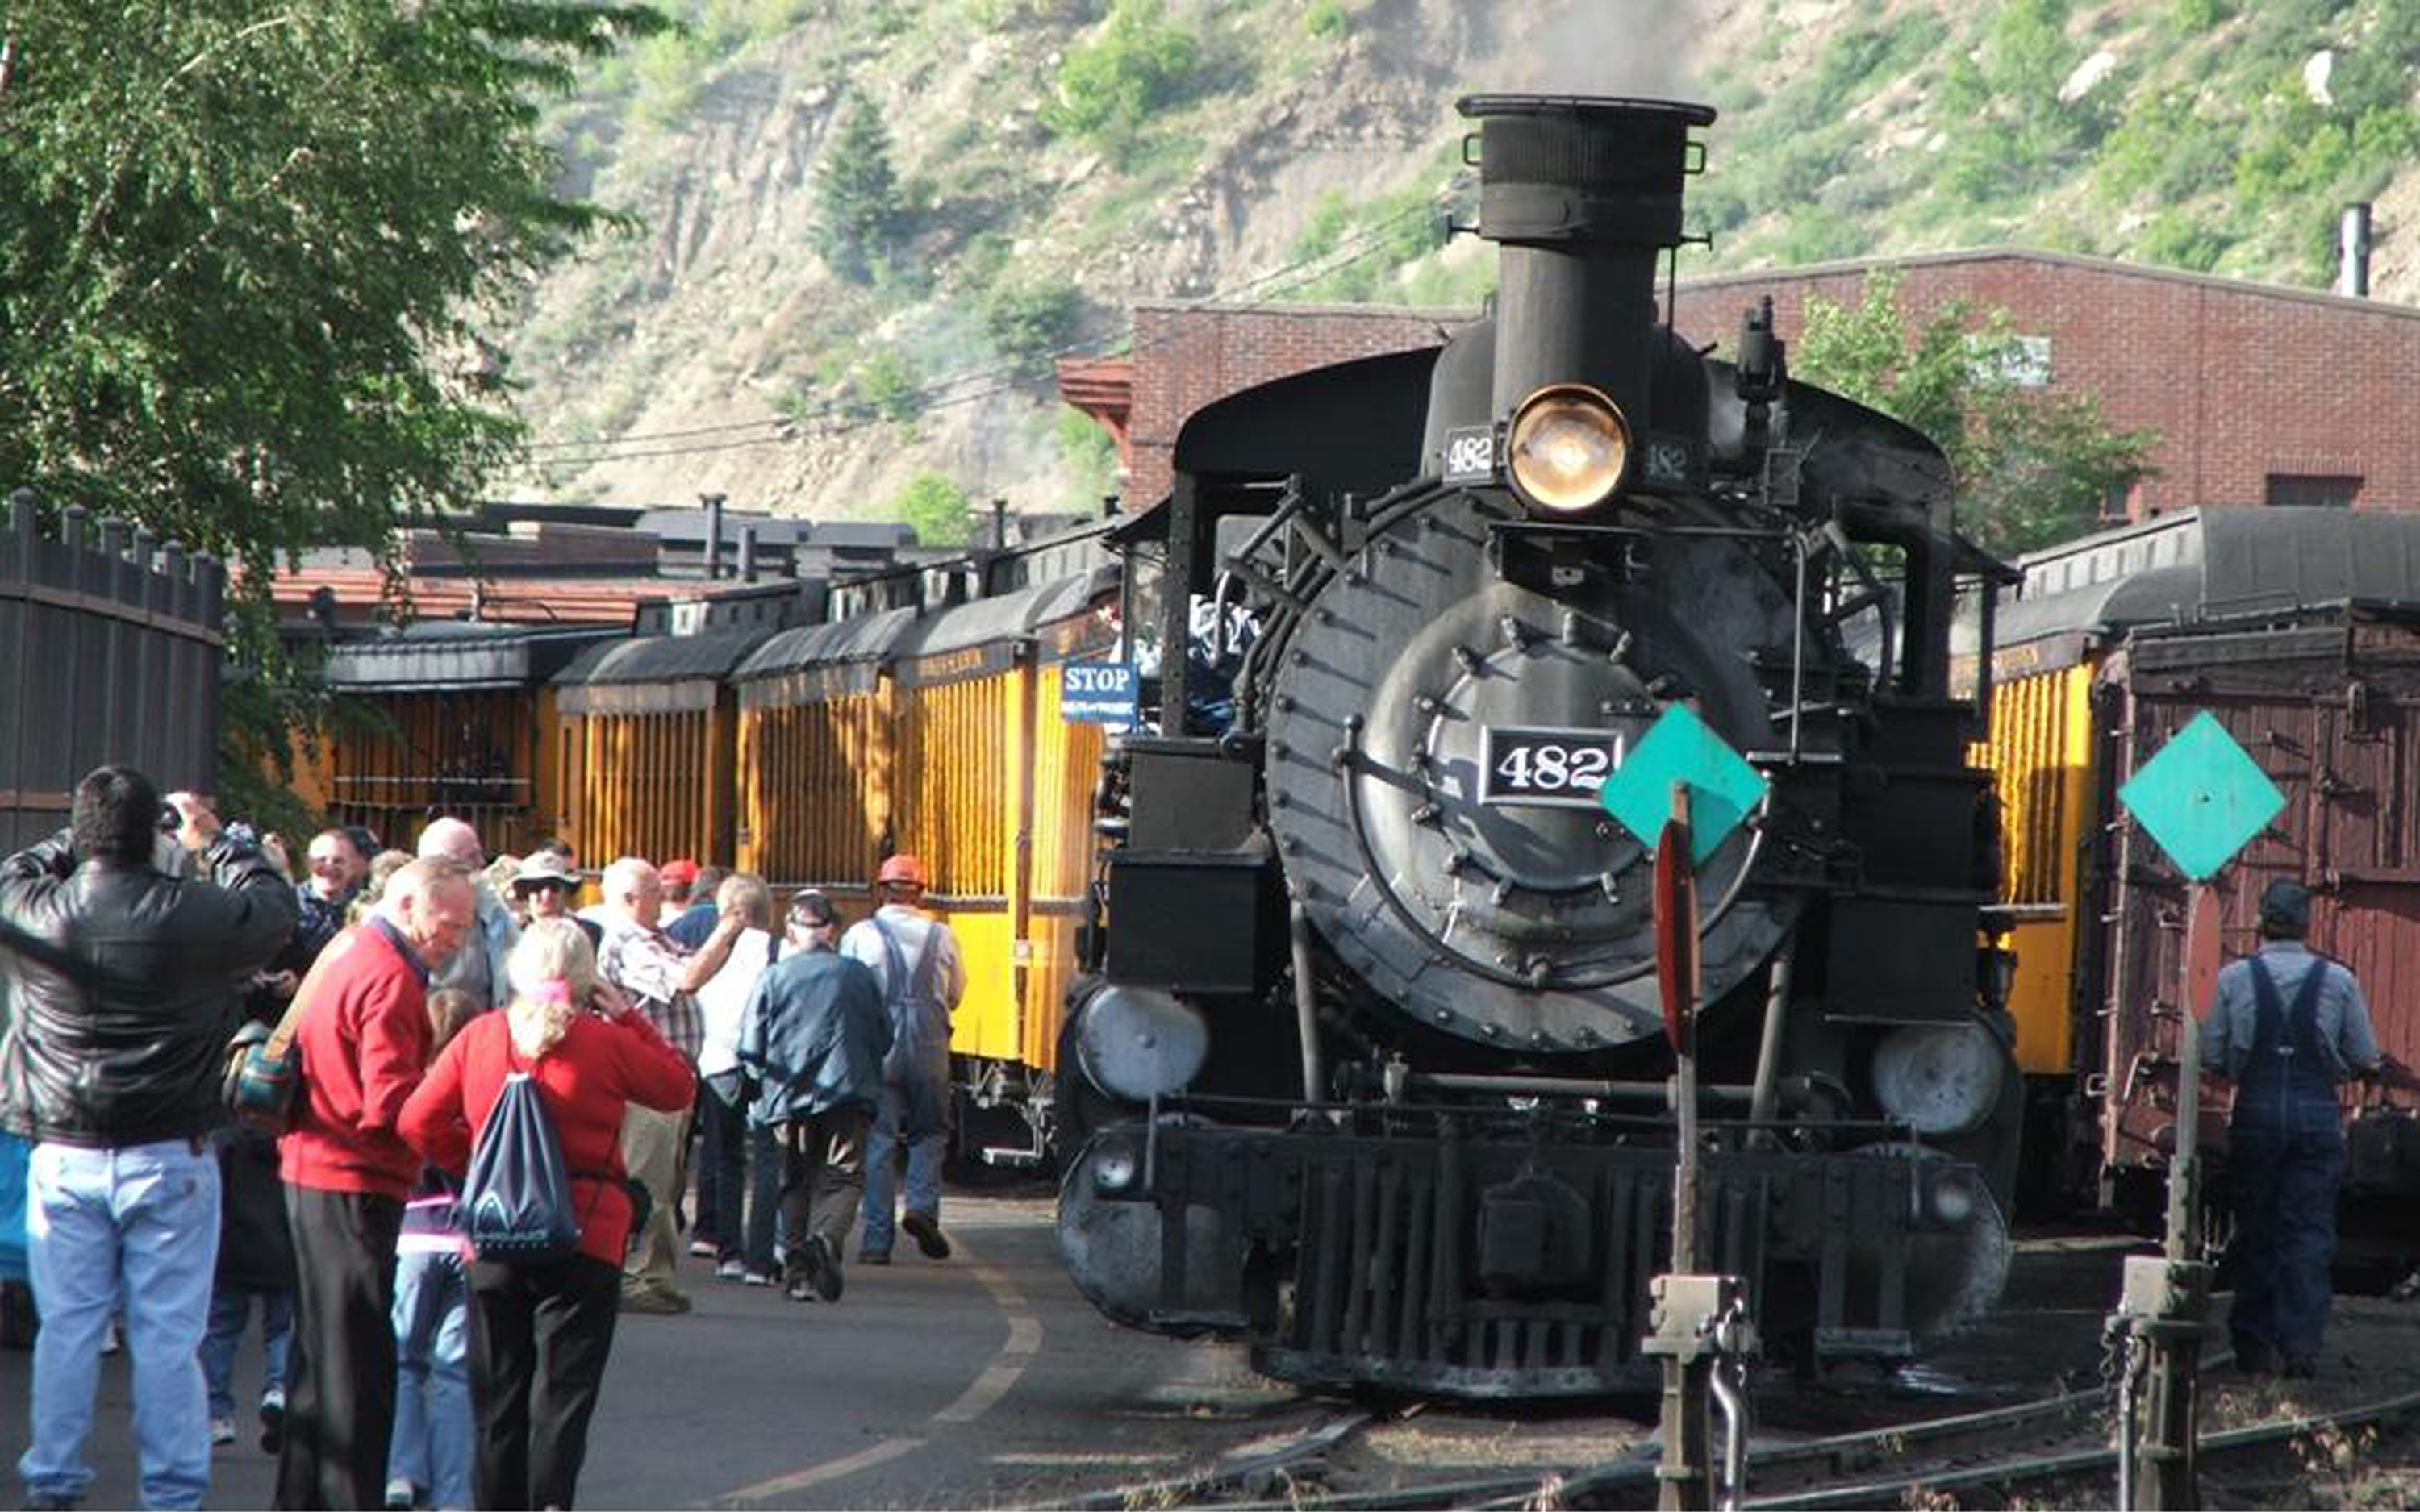 Thousands of tourists come to Silverton each year to explore its historic resources and ride the Durango and Silverton Narrow Gauge Railroad, a National Historic Landmark.